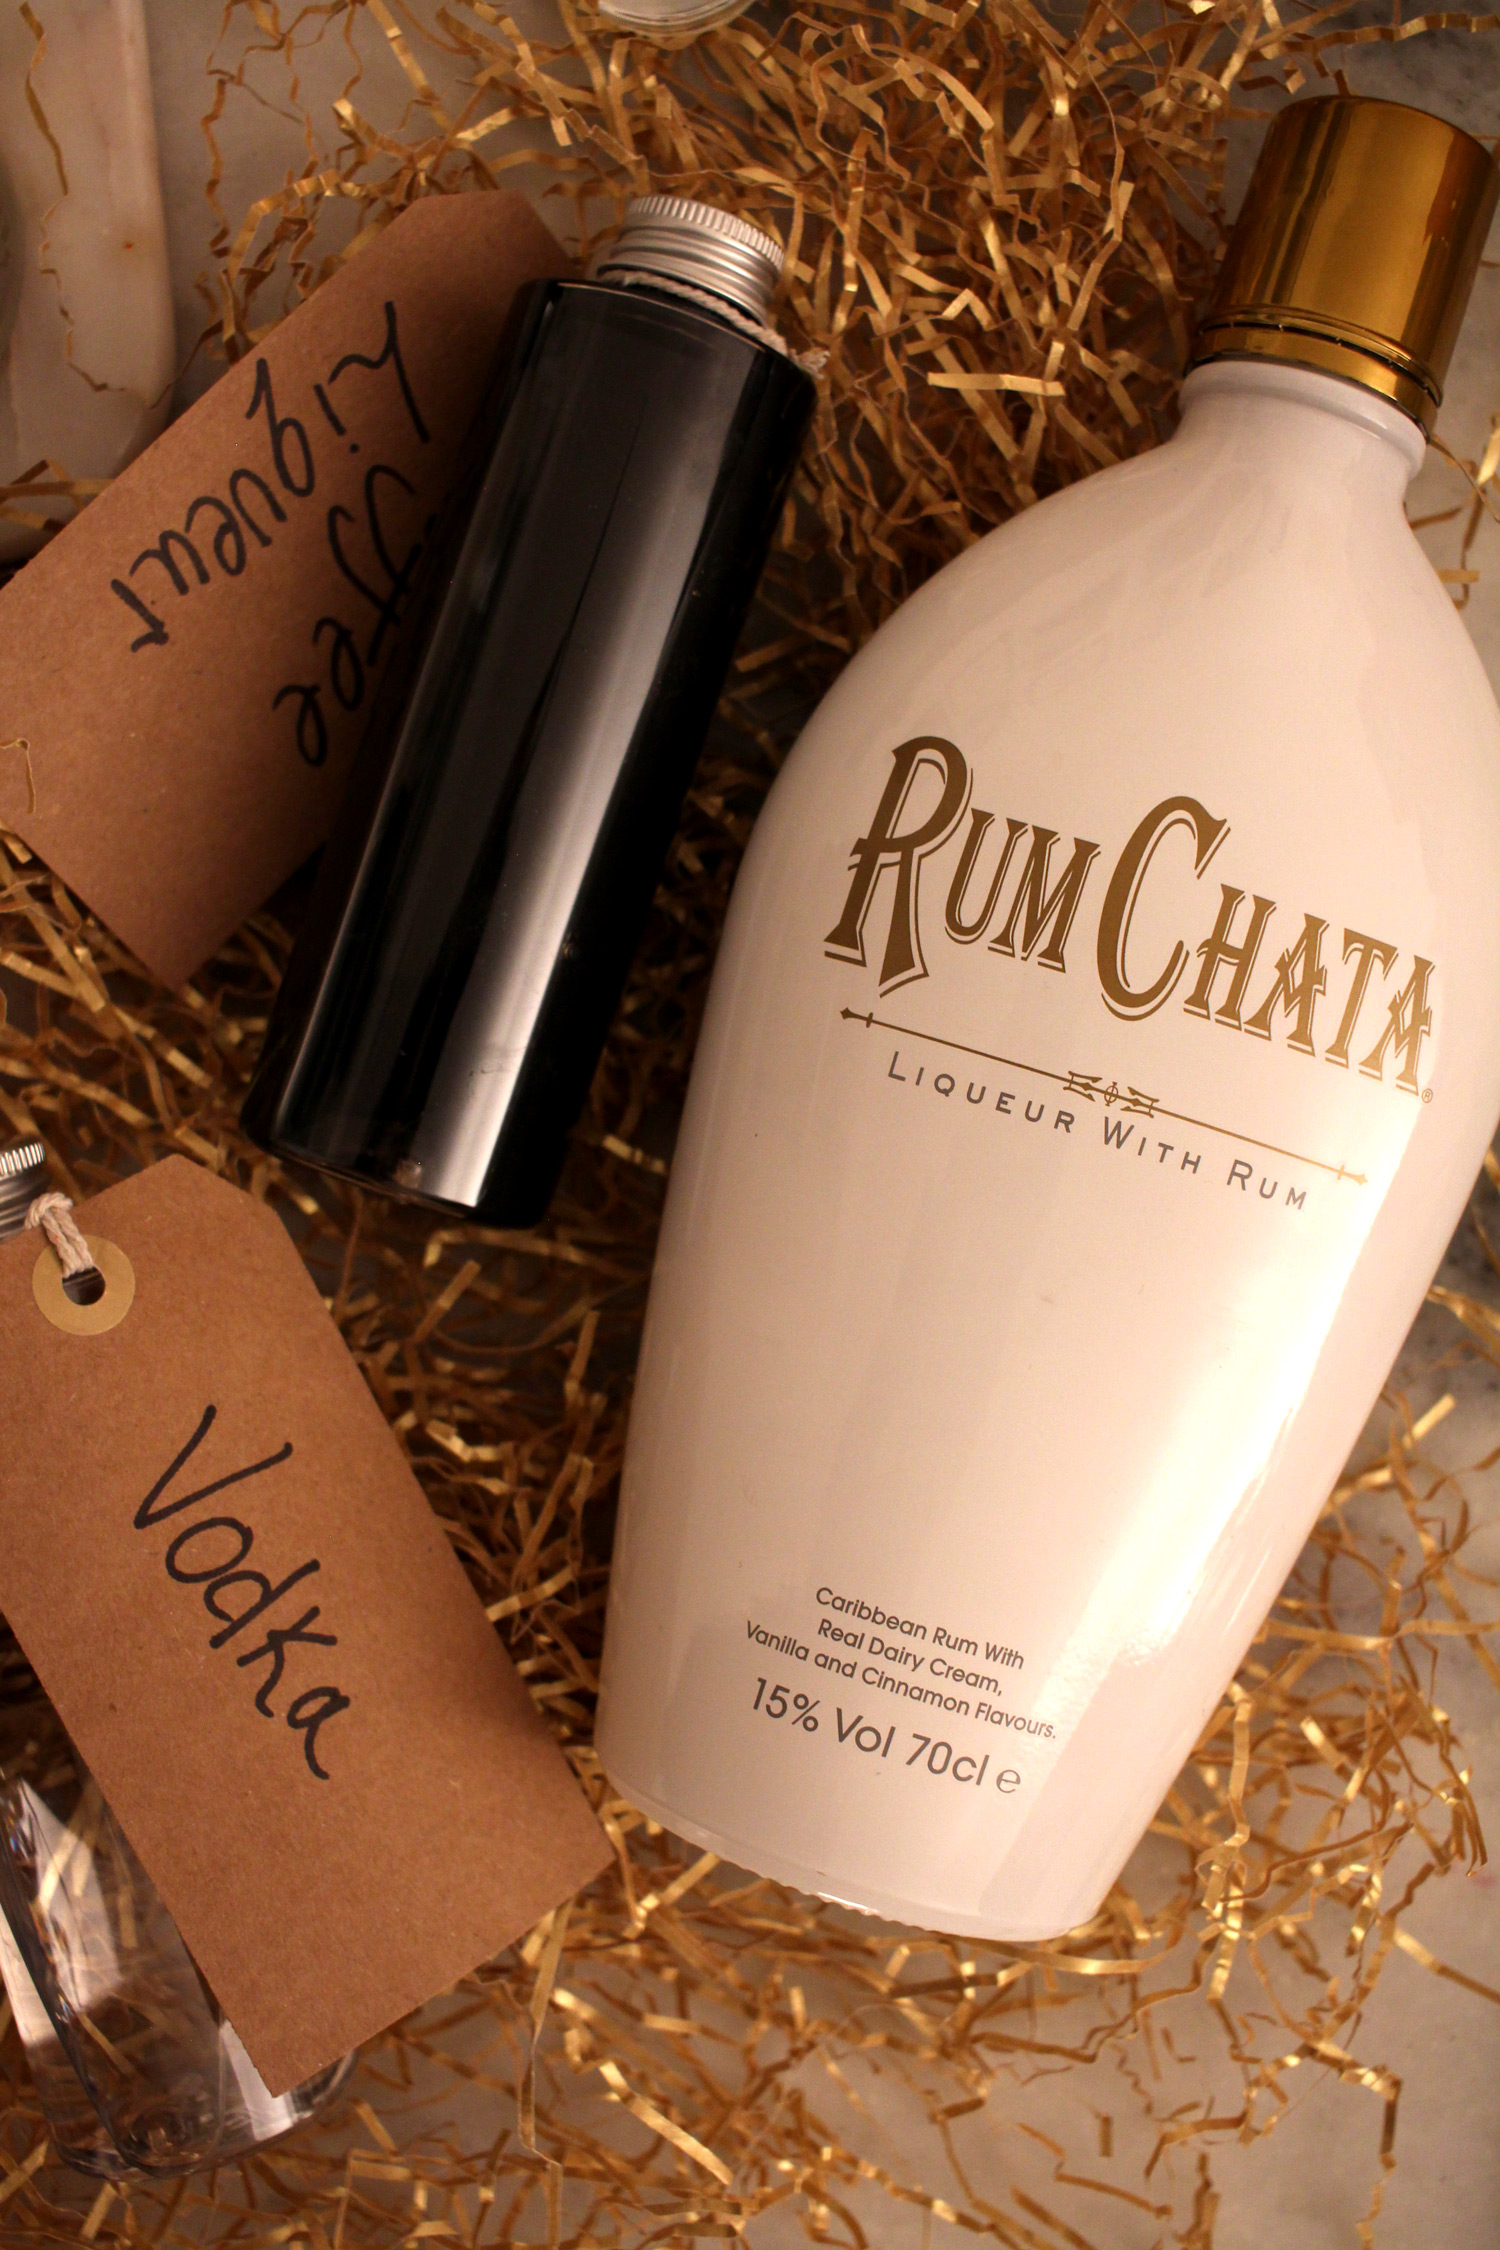 rum-chata-post-girls-night-in-lifestyle-cocktails-12